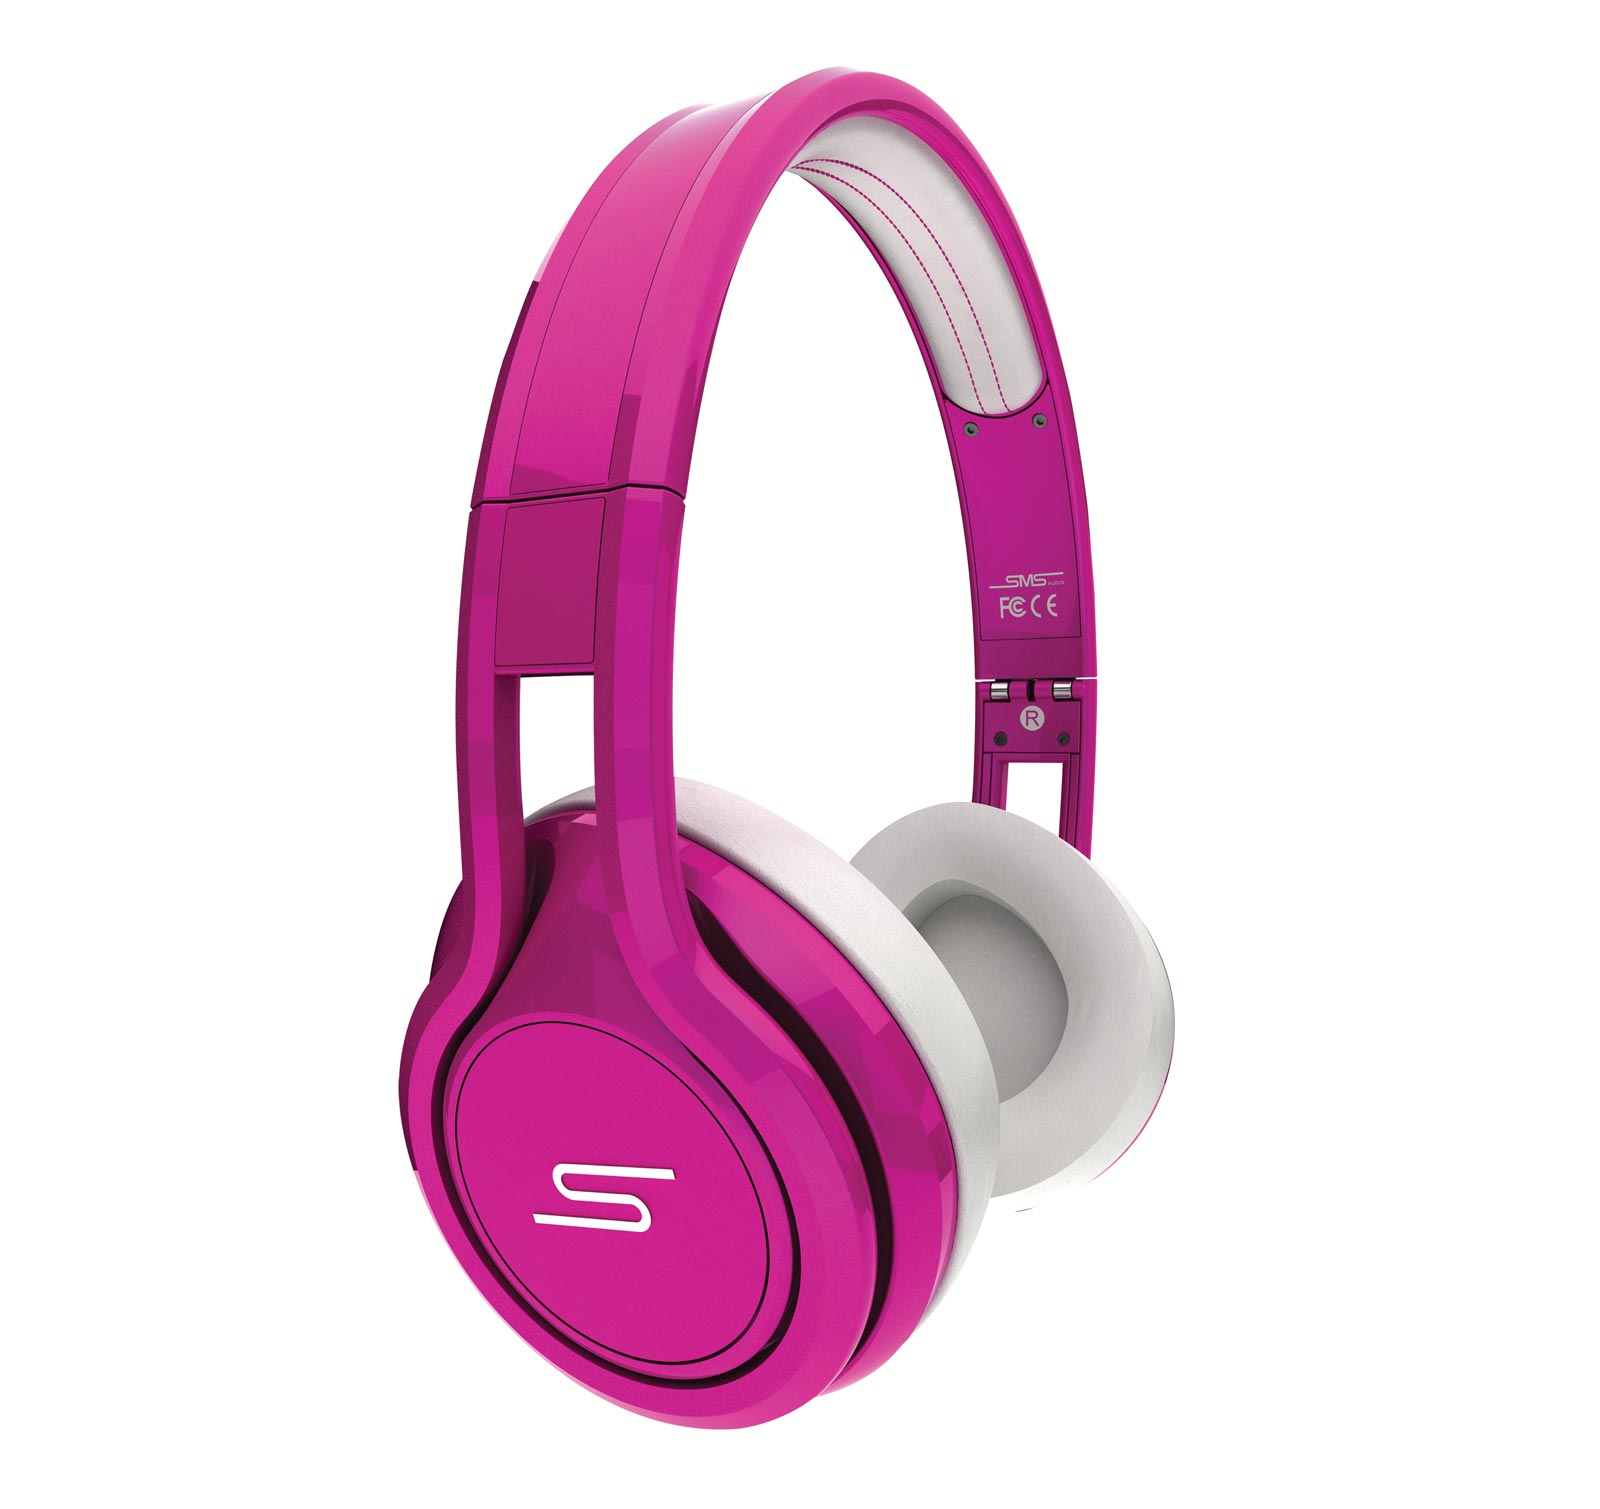 SMS Audio Street by 50 Cent Wired On-Ear Headphones - Pink